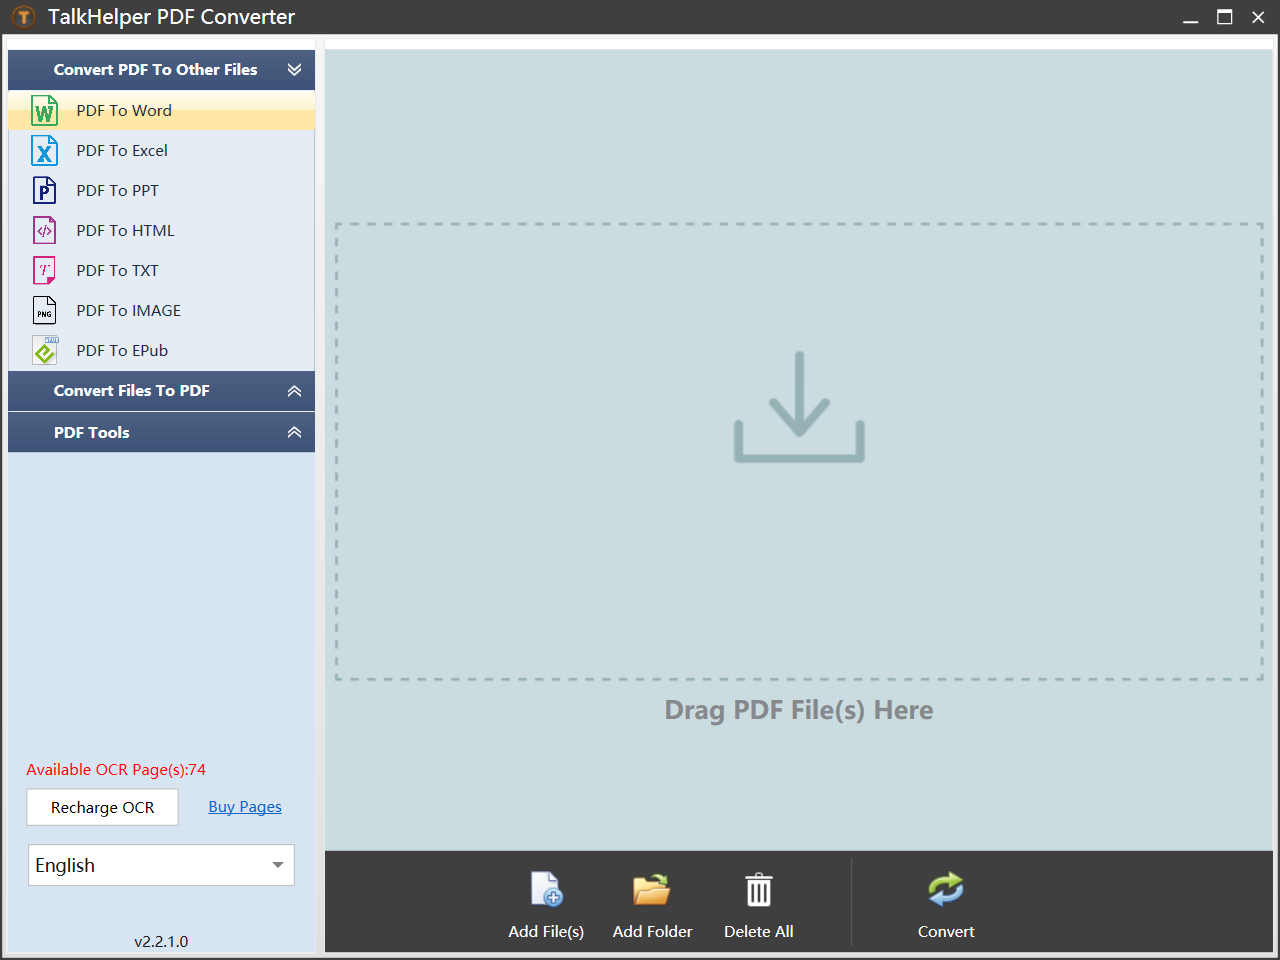 TalkHelper PDF Converter OCR